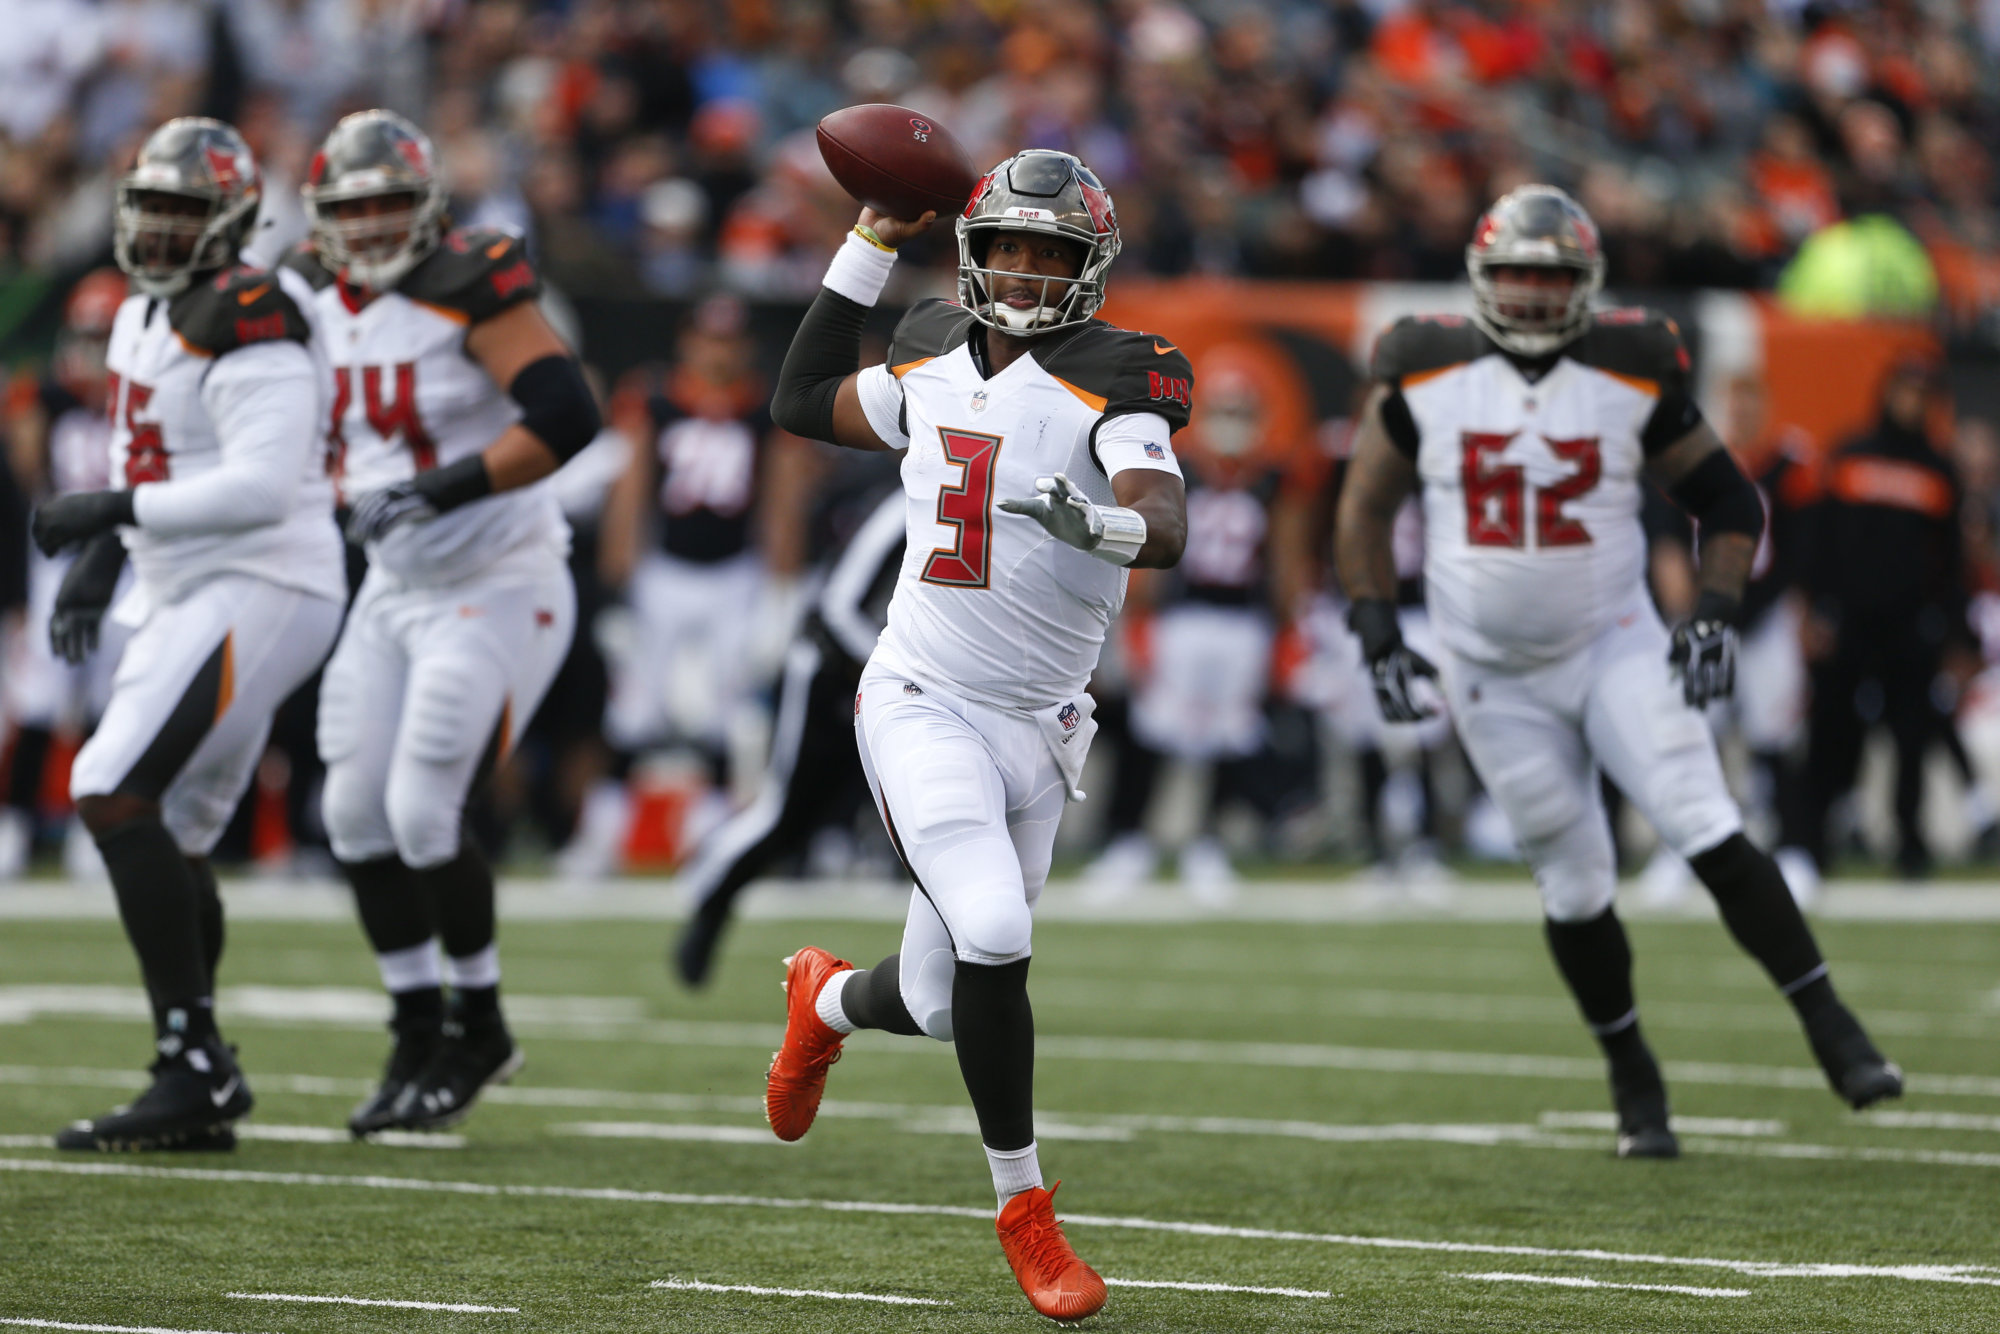 Tampa Bay Buccaneers quarterback Jameis Winston (3) scramble against the Cincinnati Bengals during the first half of an NFL football game in Cincinnati, Sunday, Oct. 28, 2018. (AP Photo/Gary Landers)